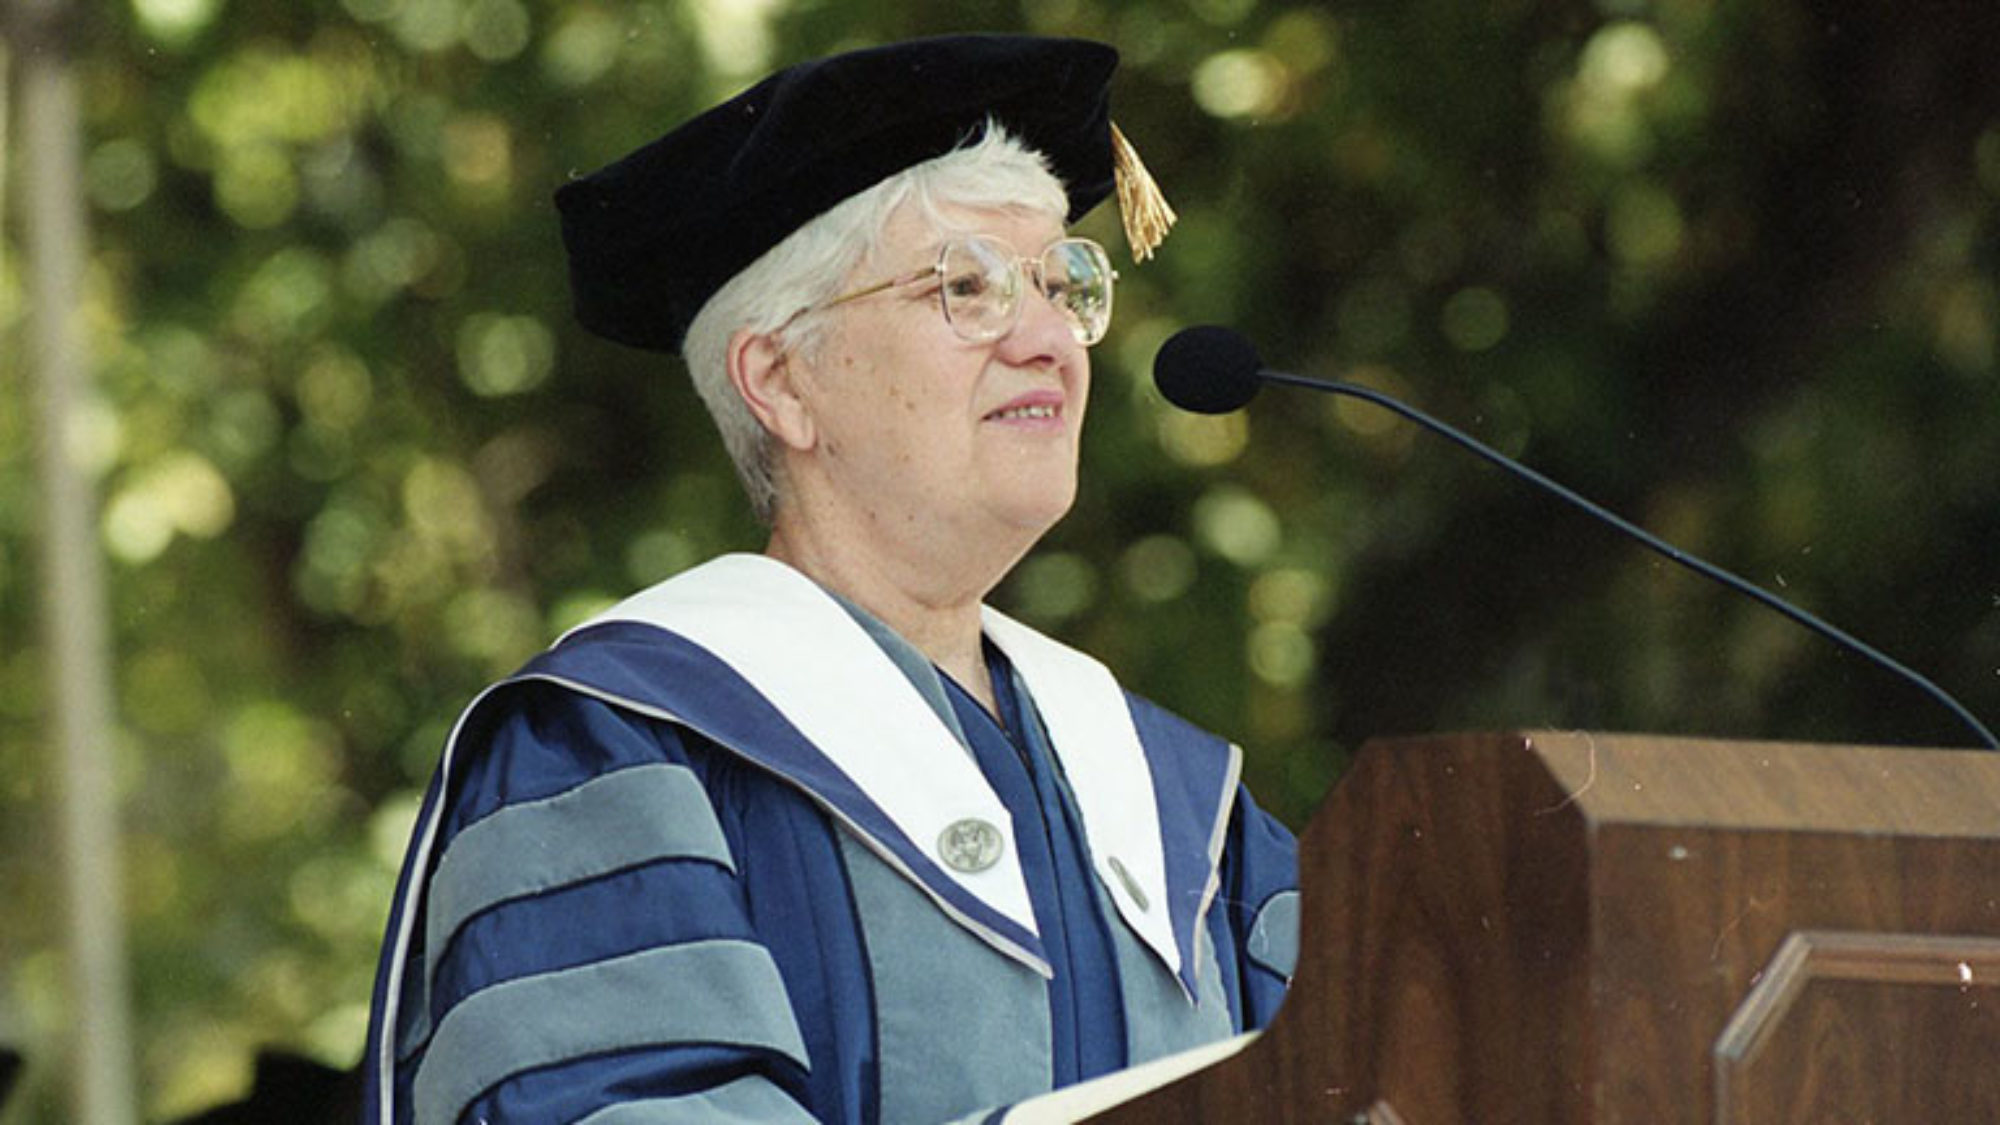 Vera Rubin at a podium wearing cap and gown